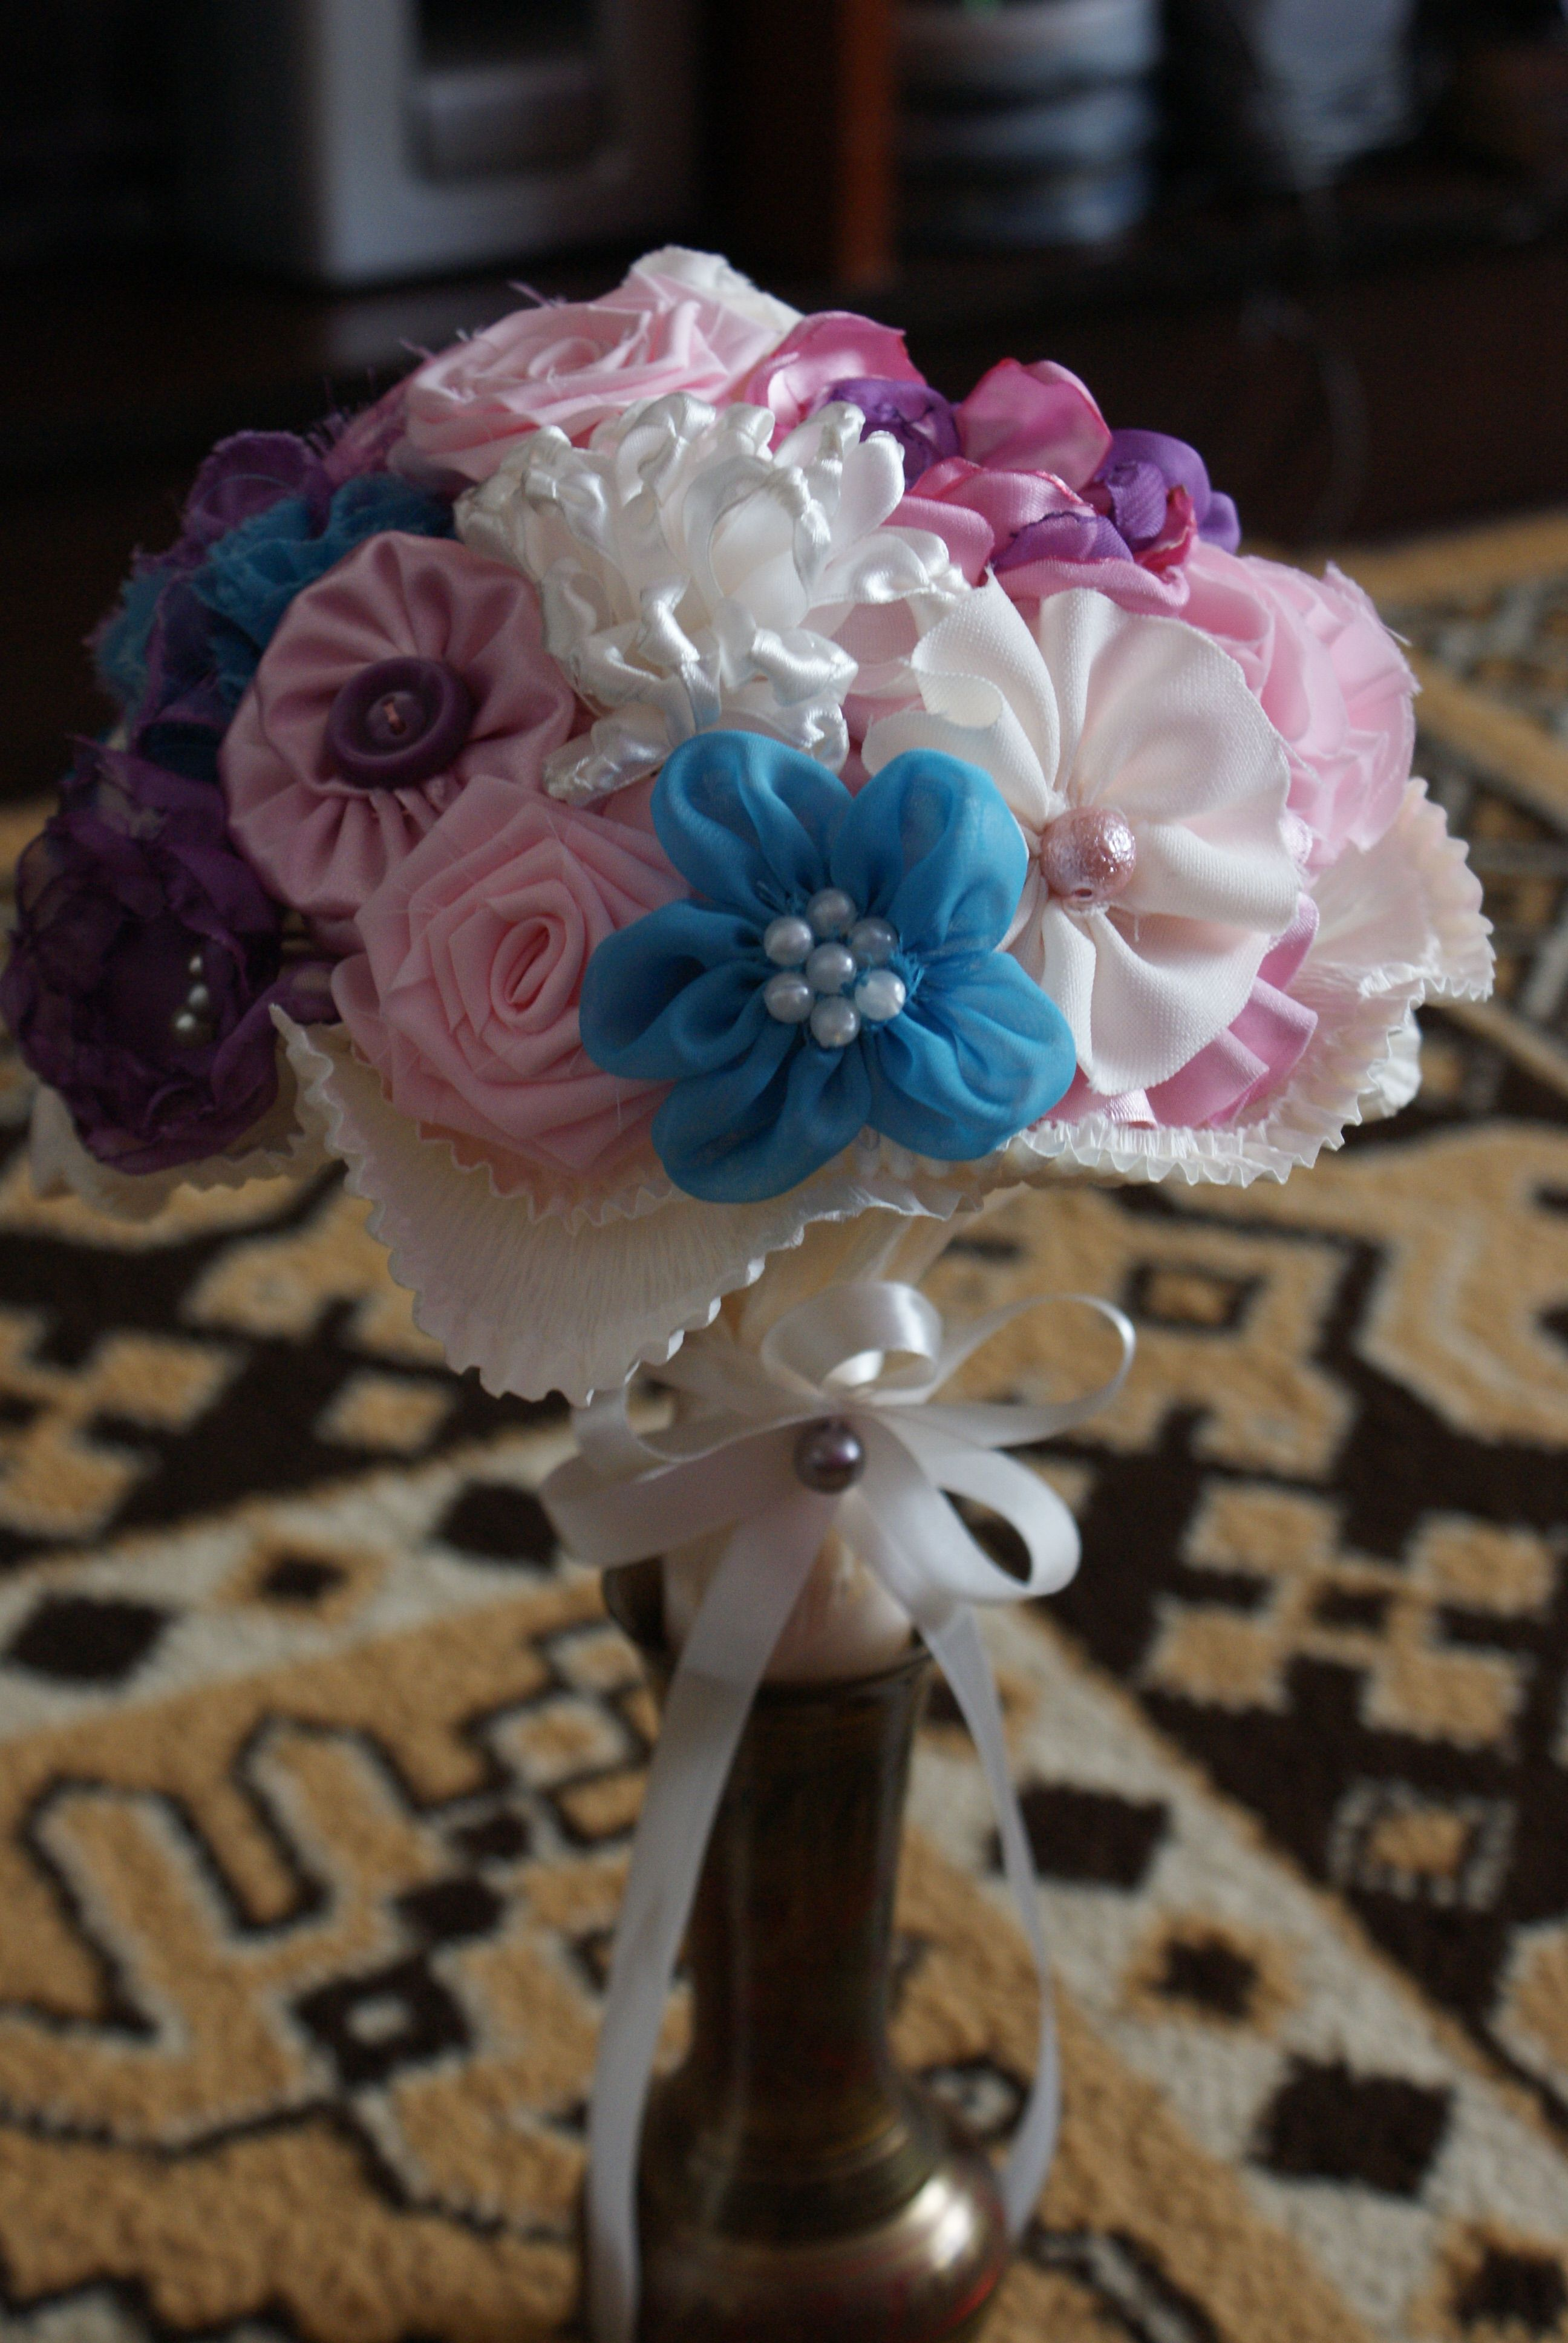 Fabric flowers bouquet my diy projects pinterest fabric flowers fabric flowers bouquet izmirmasajfo